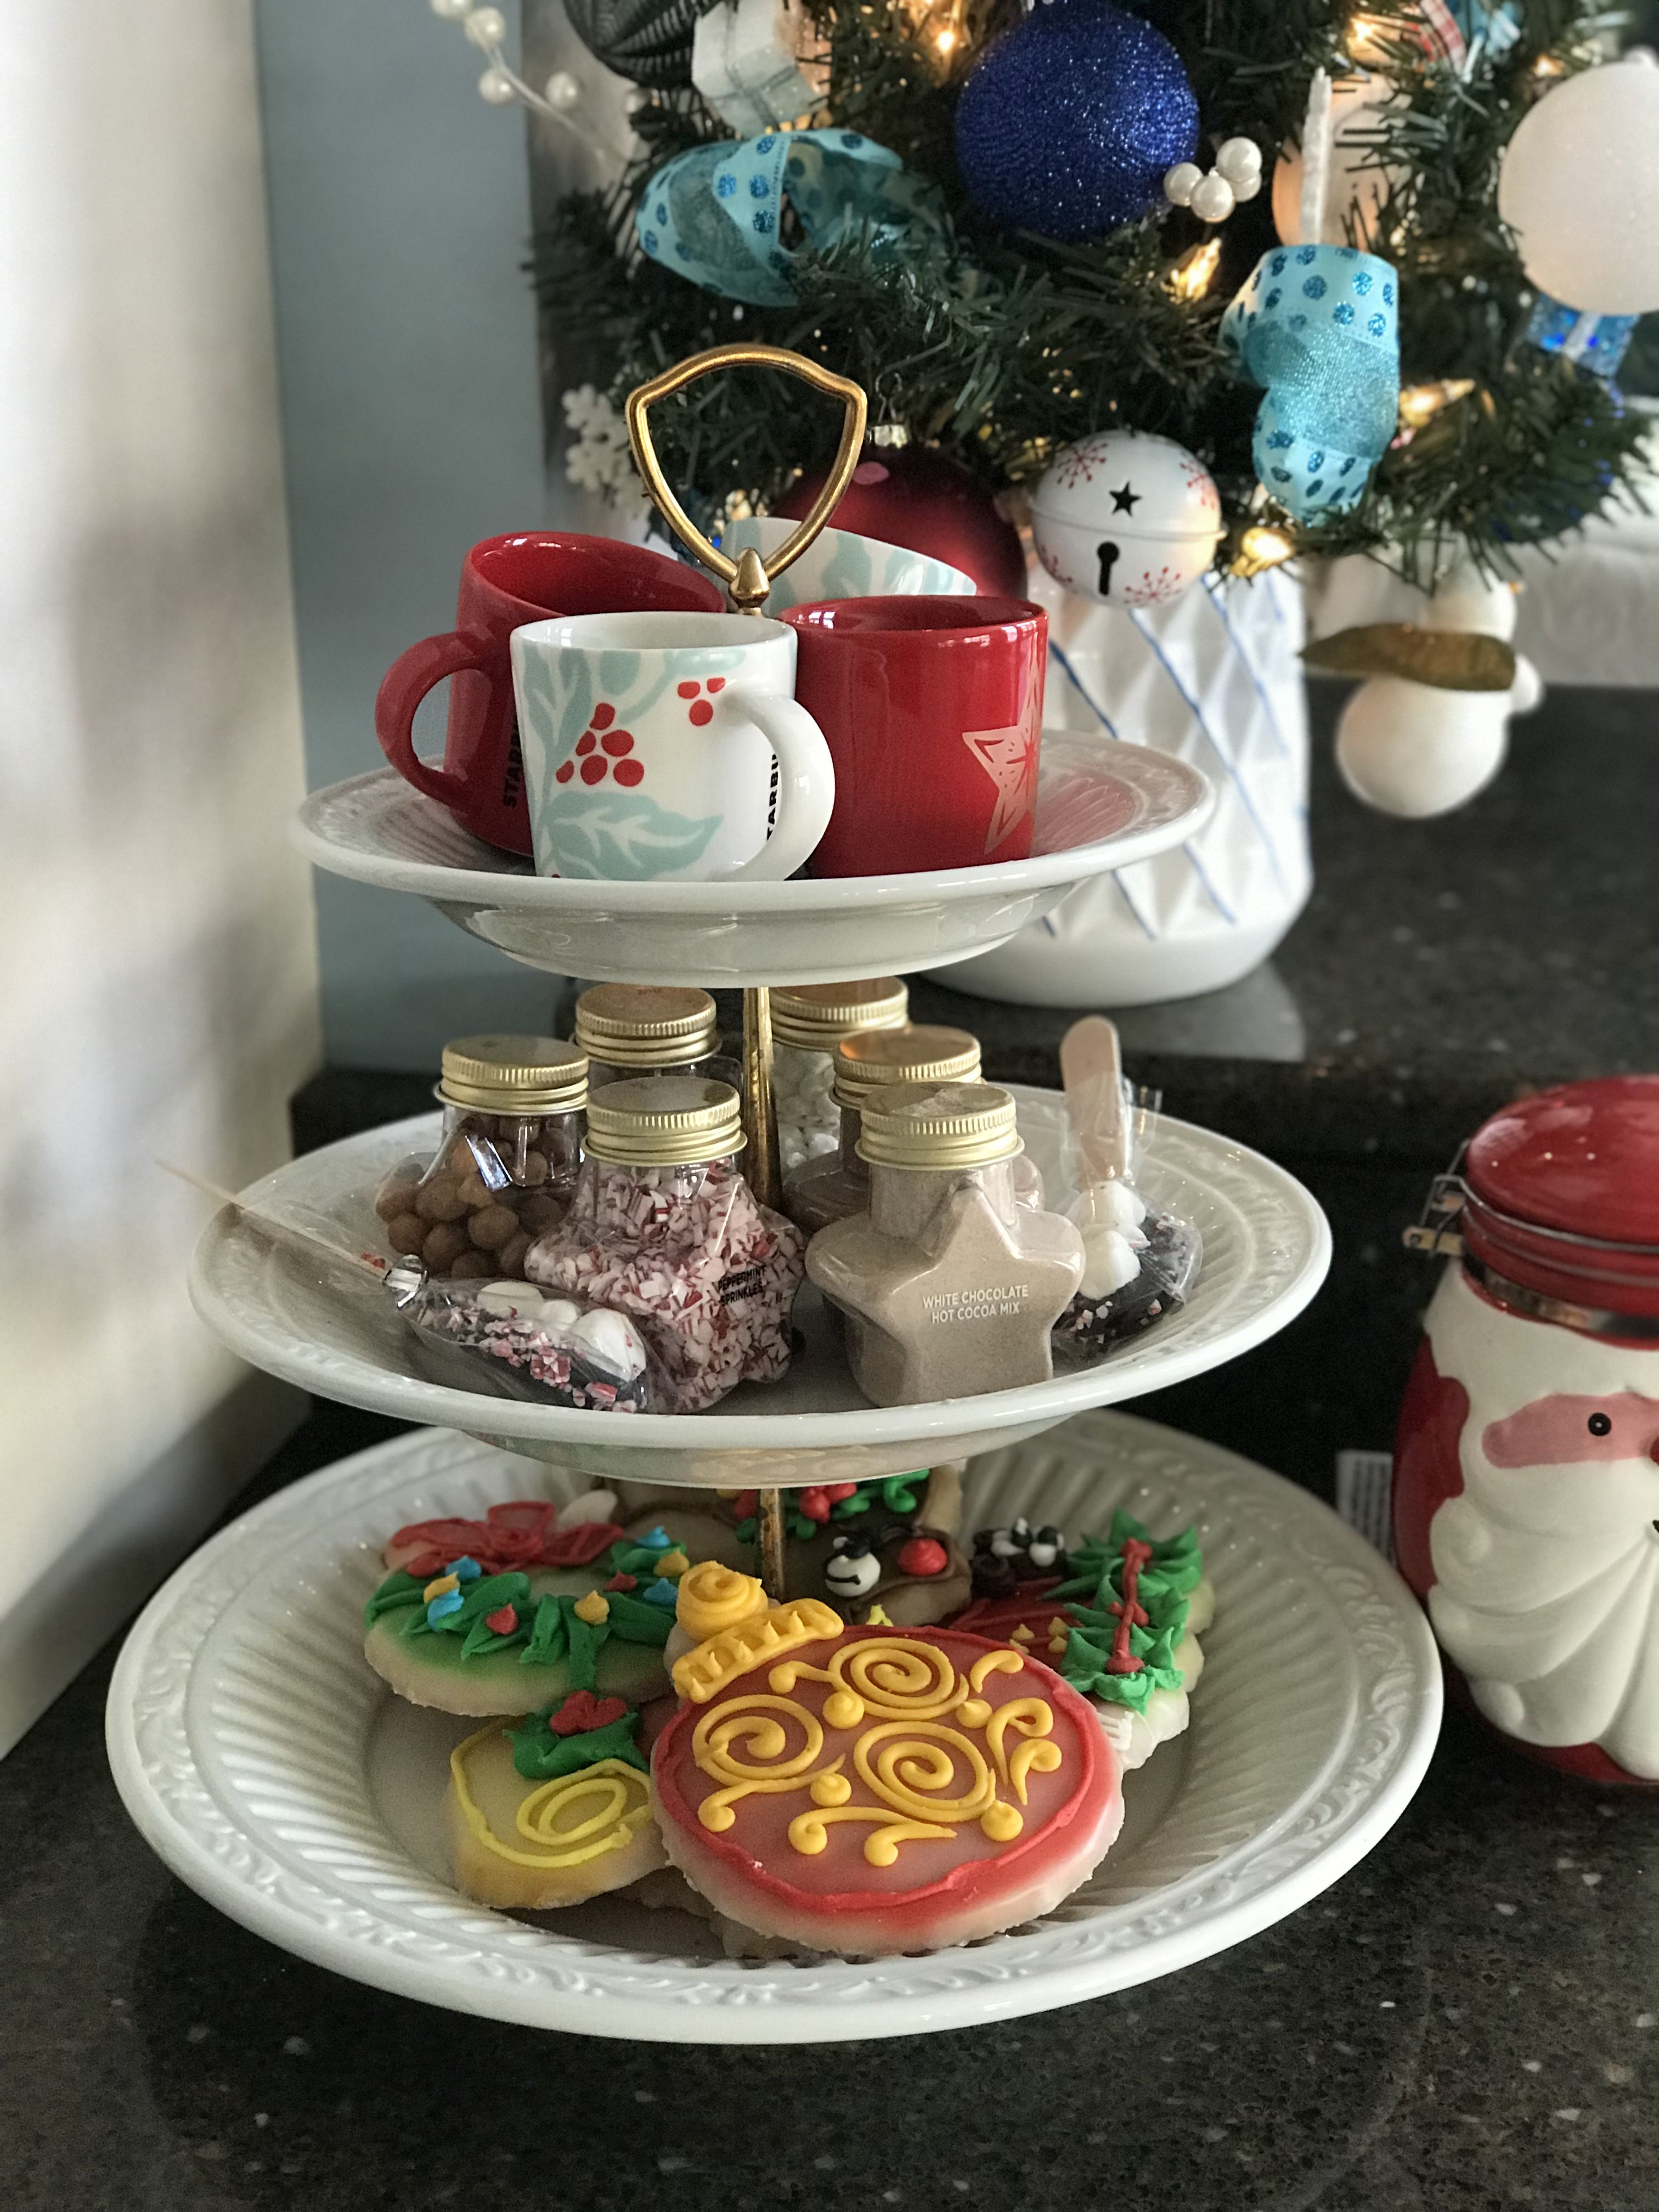 Pin By Carrie White On Christmas Tiered Cakes Tiered Cake Stand Cake Stand